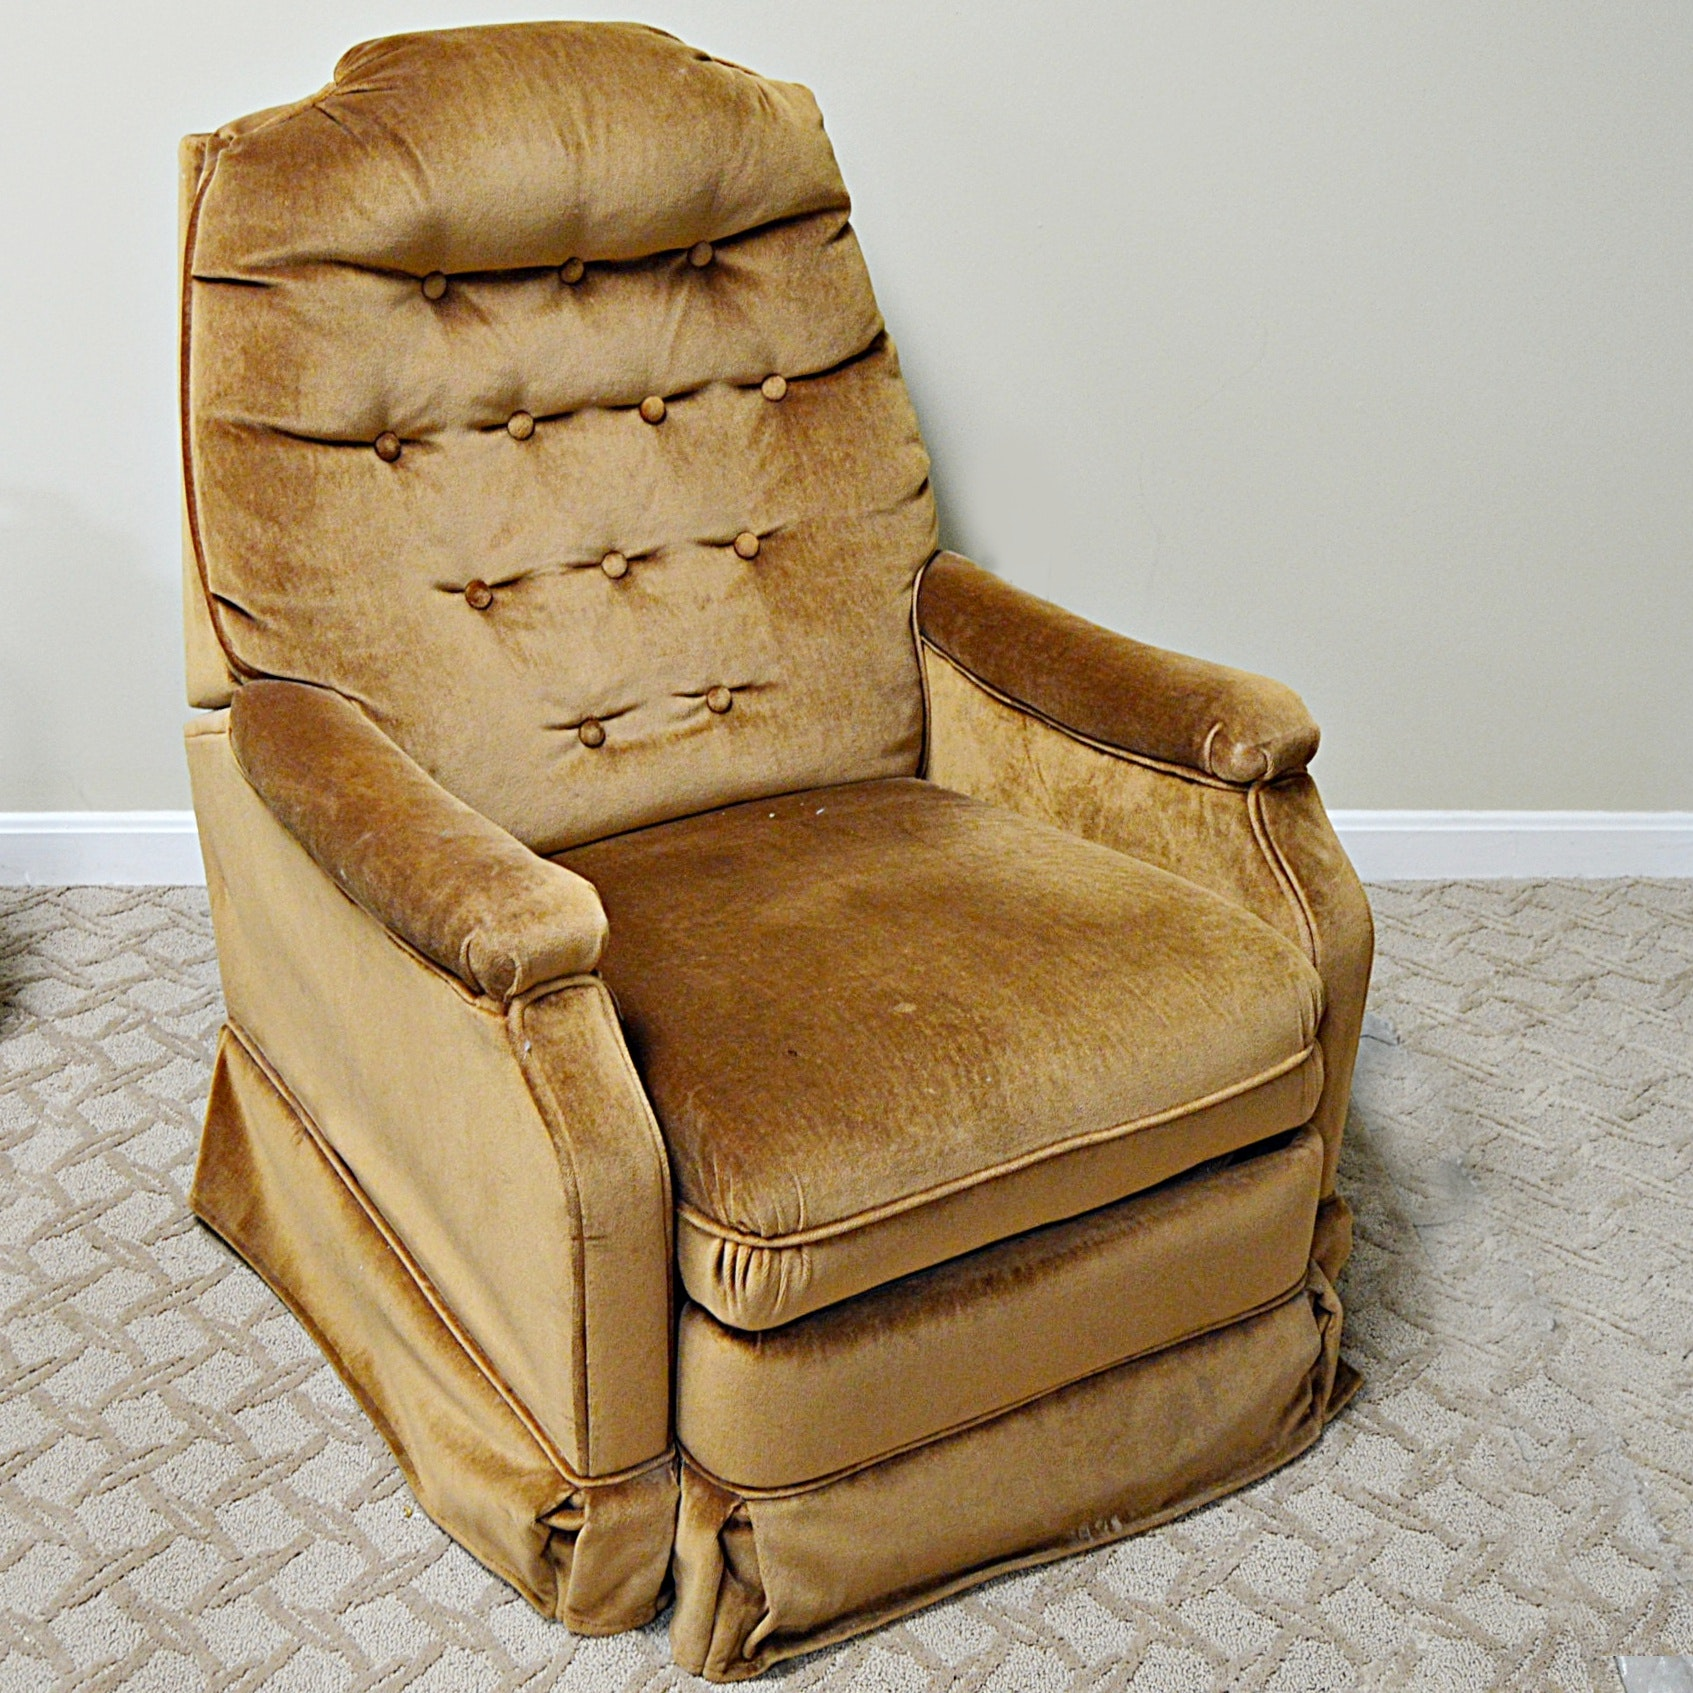 Recliner Chair in Velour Upholstery